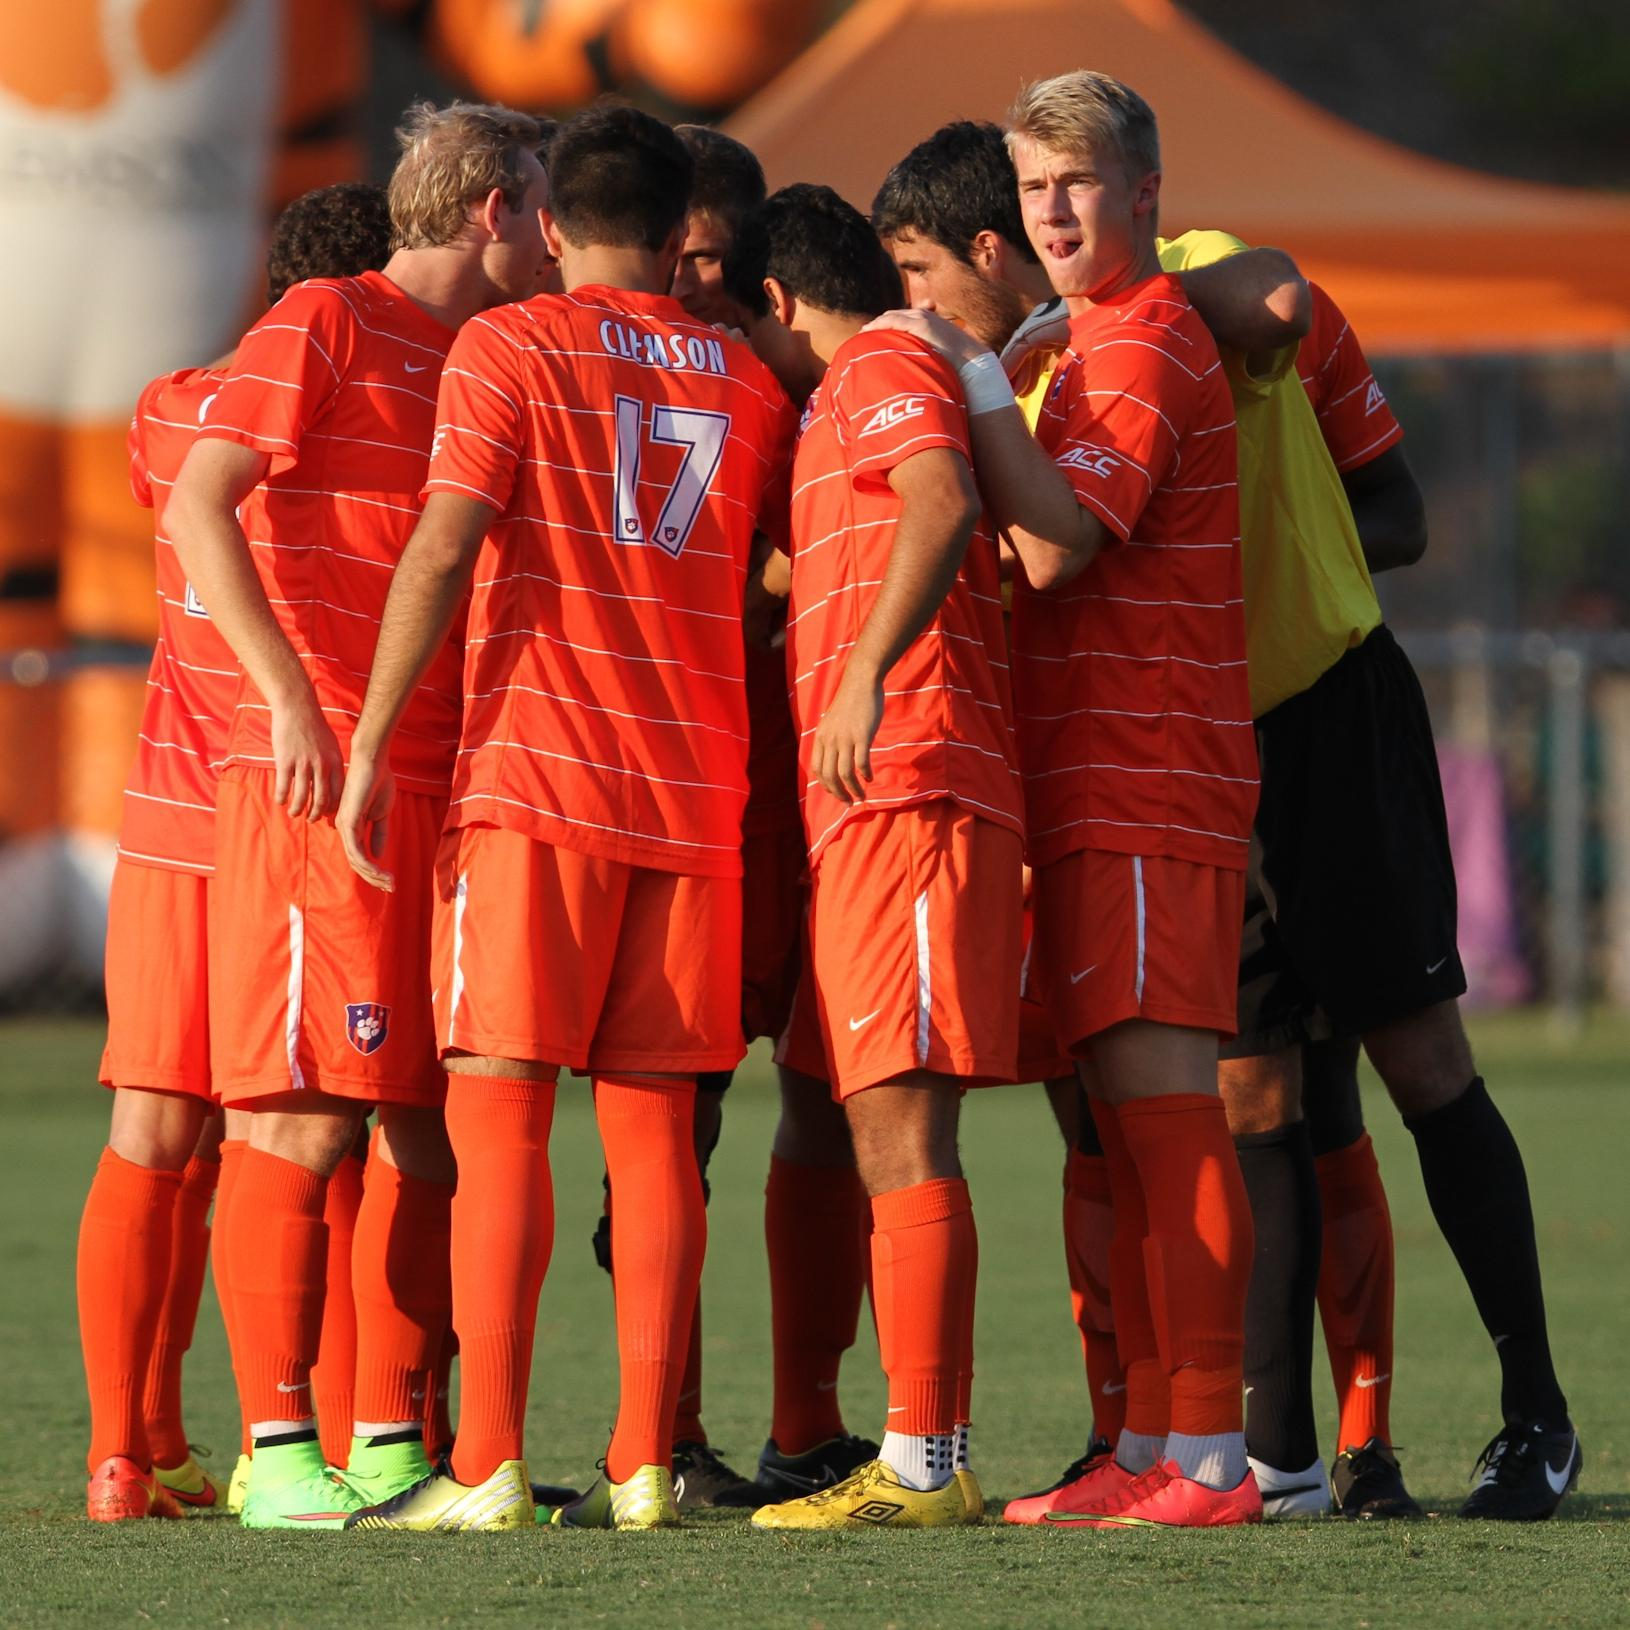 MSOC – Tigers in the Pros